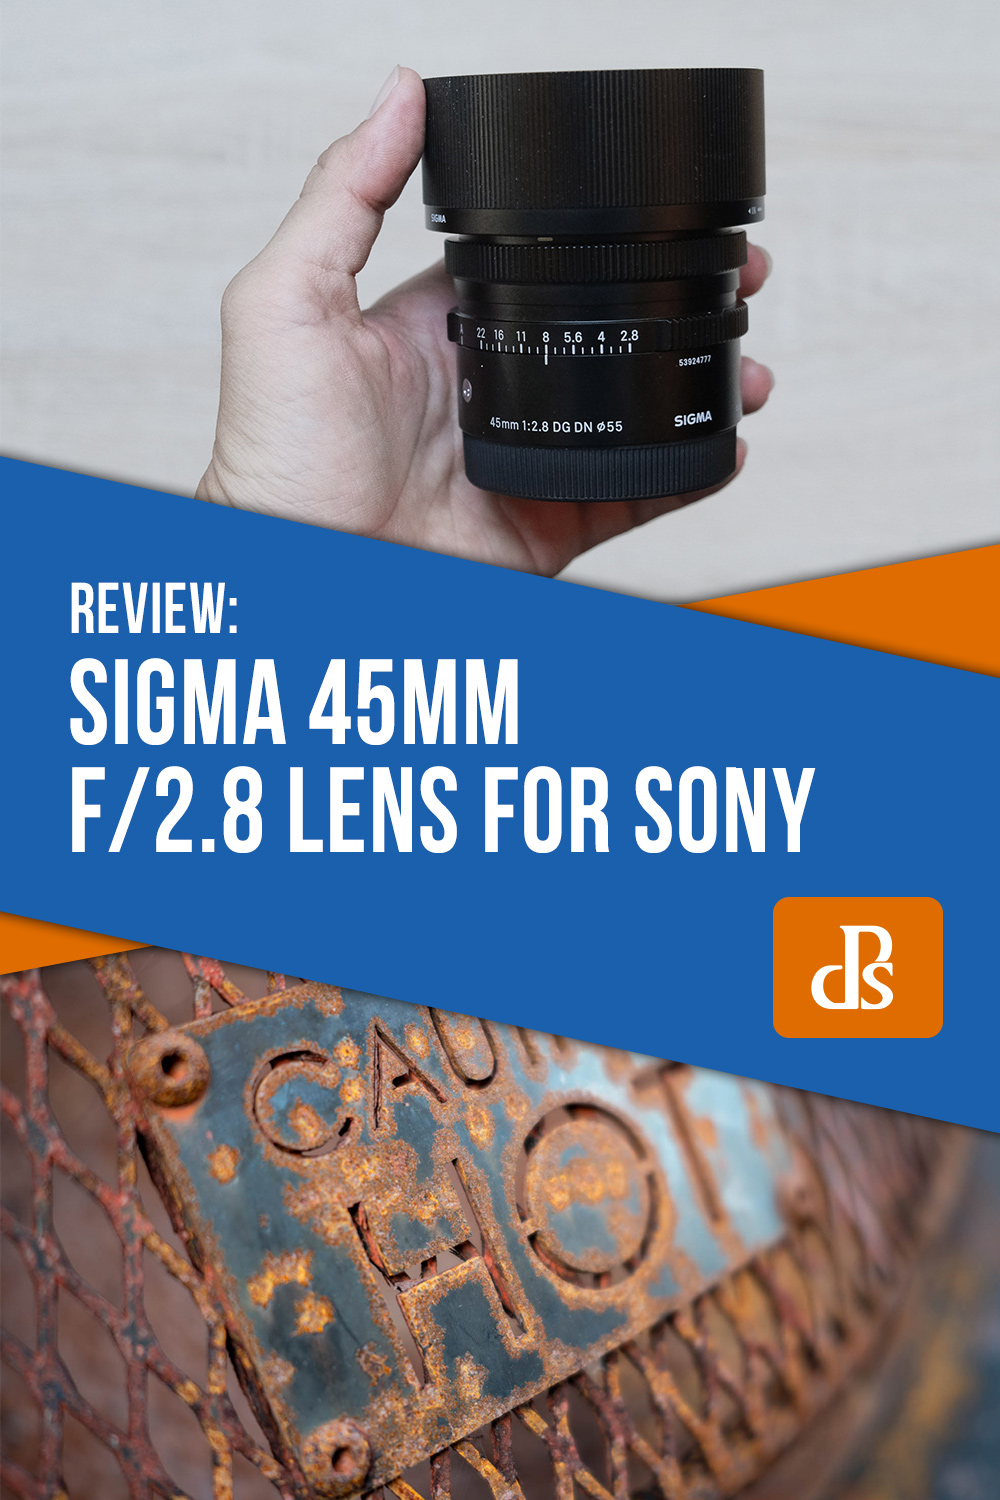 Sigma 45mm f/2.8 Lens for Sony